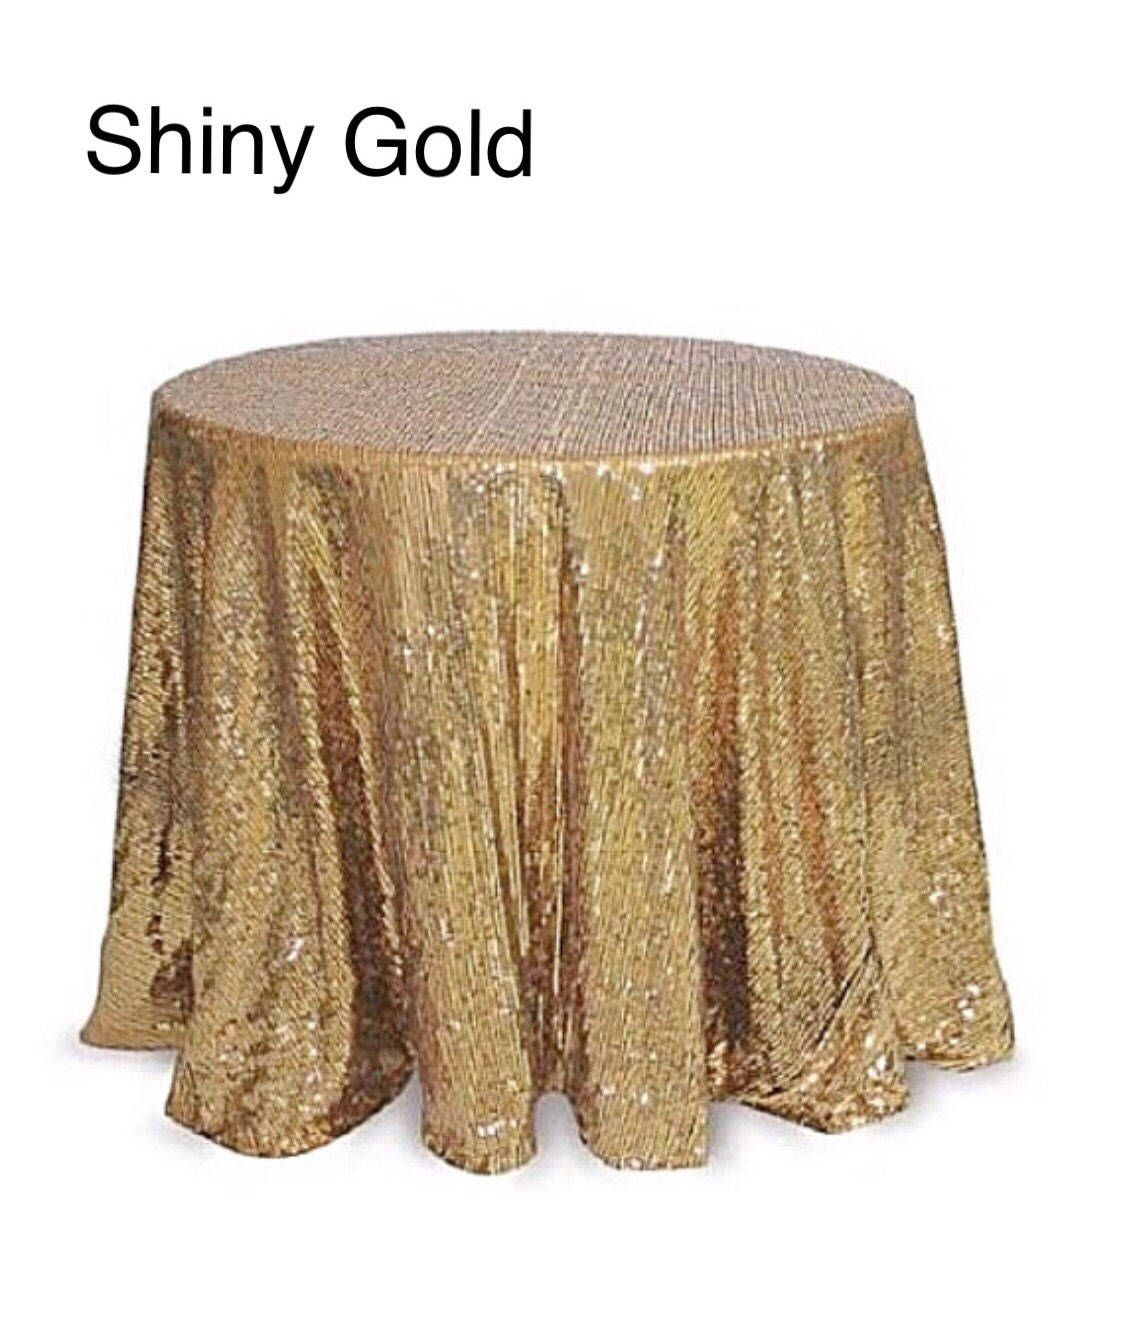 Gold Sequin Tablecloth Table Cloth Wedding Gold Table Runner Sequin Overlay Sequence Tablecloth Quinceanera R Table Overlays Sequin Tablecloth Wedding Tablecloths